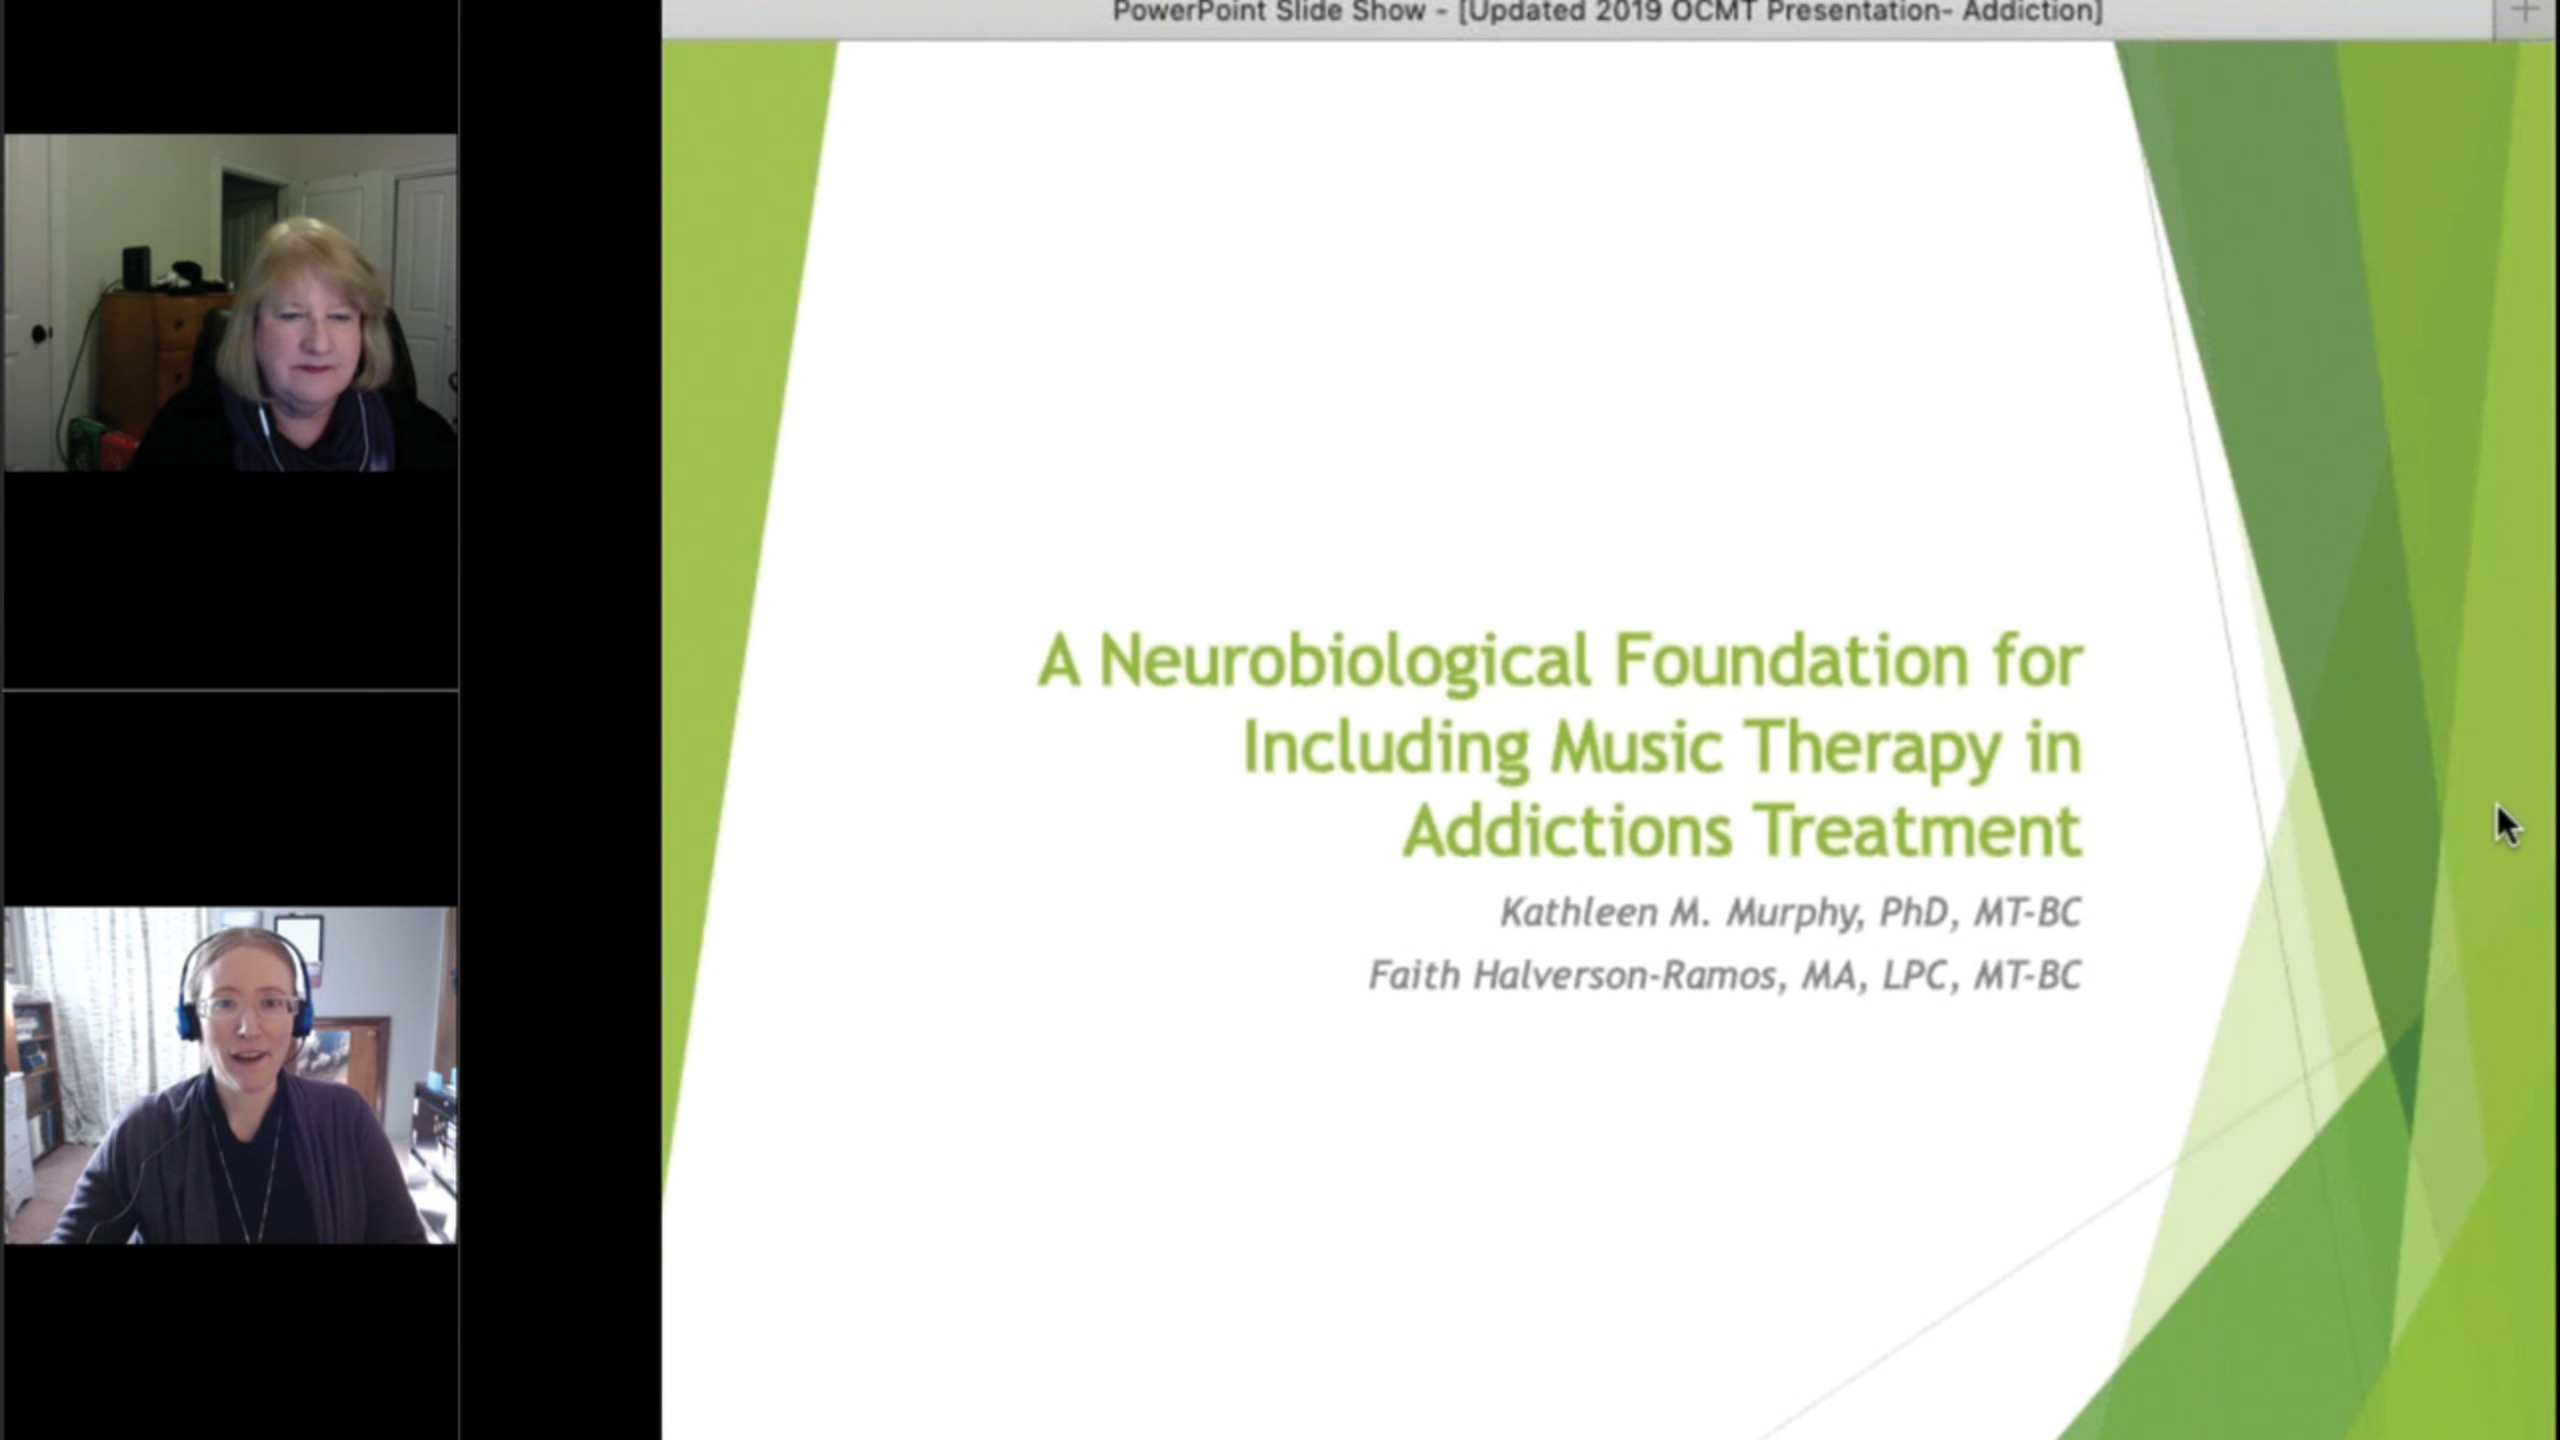 A Neurobiological Foundation for Including Music Therapy in Addictions Treatment